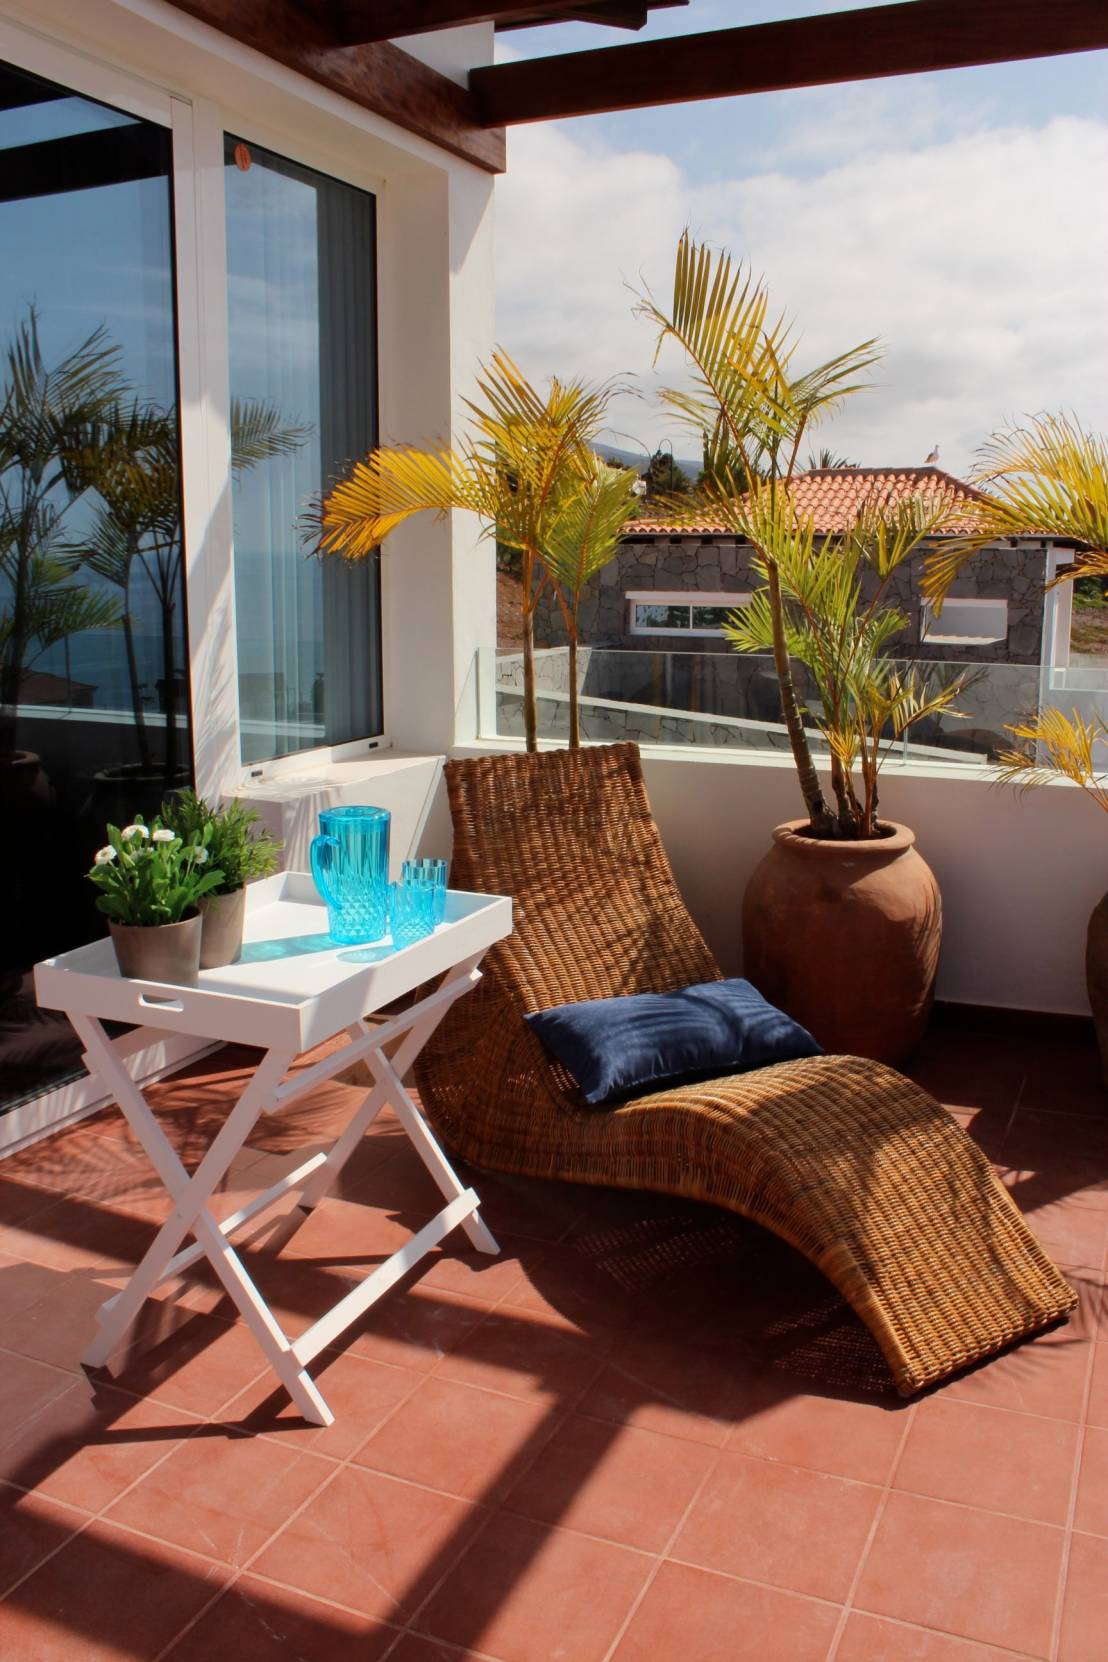 7 grandes ideas para balcones y terrazas peque as for Ideas para decorar terrazas y balcones